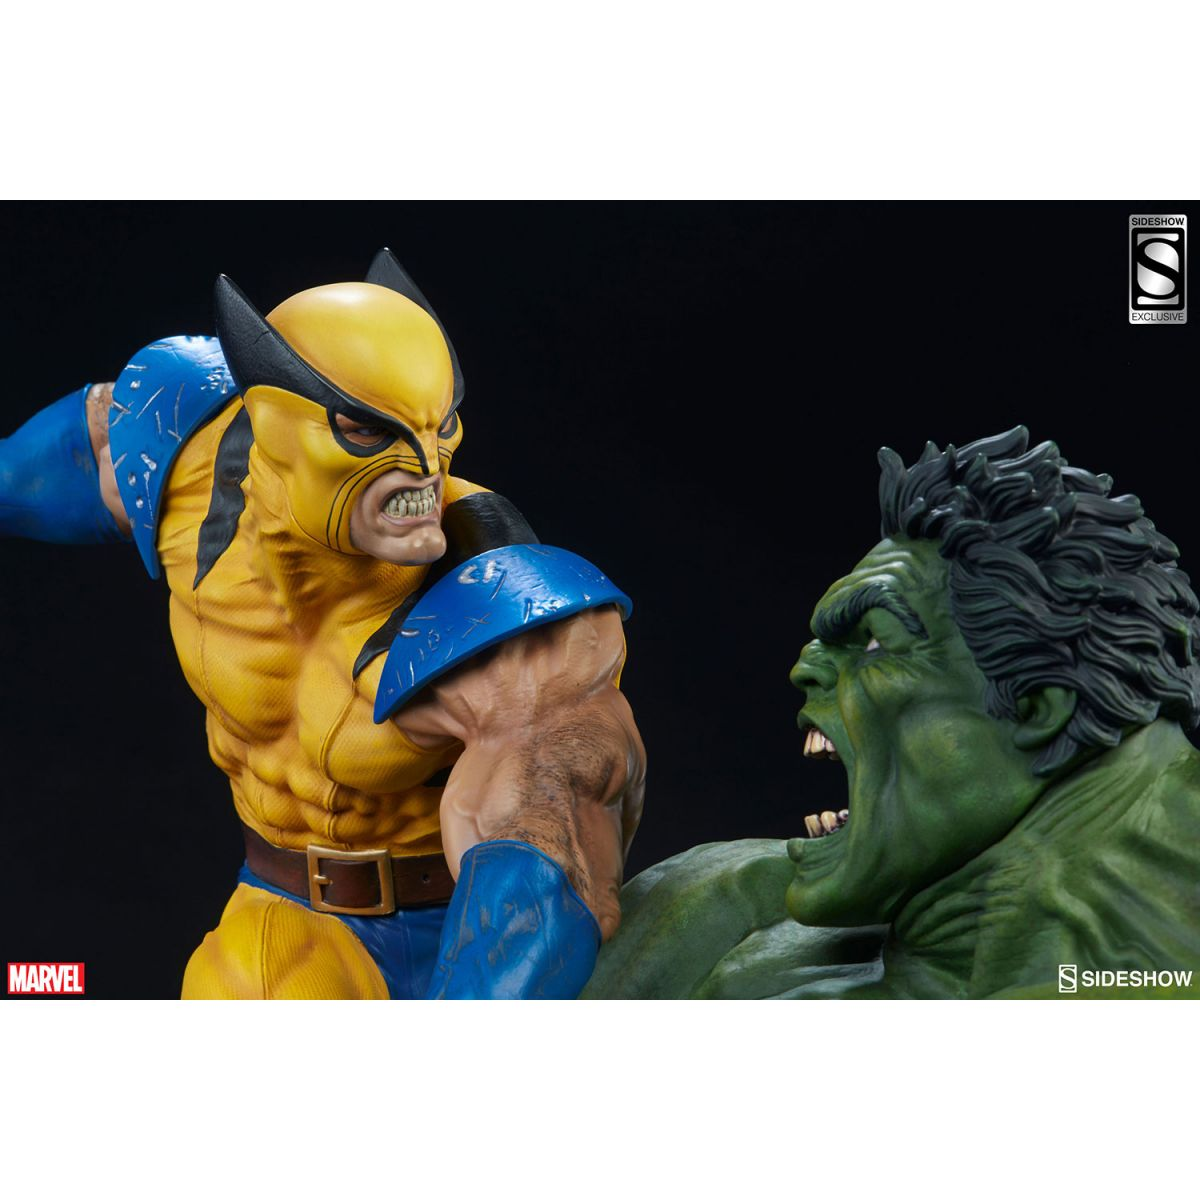 Sideshow Hulk and Wolverine Maquette Exclusive  - Movie Freaks Collectibles